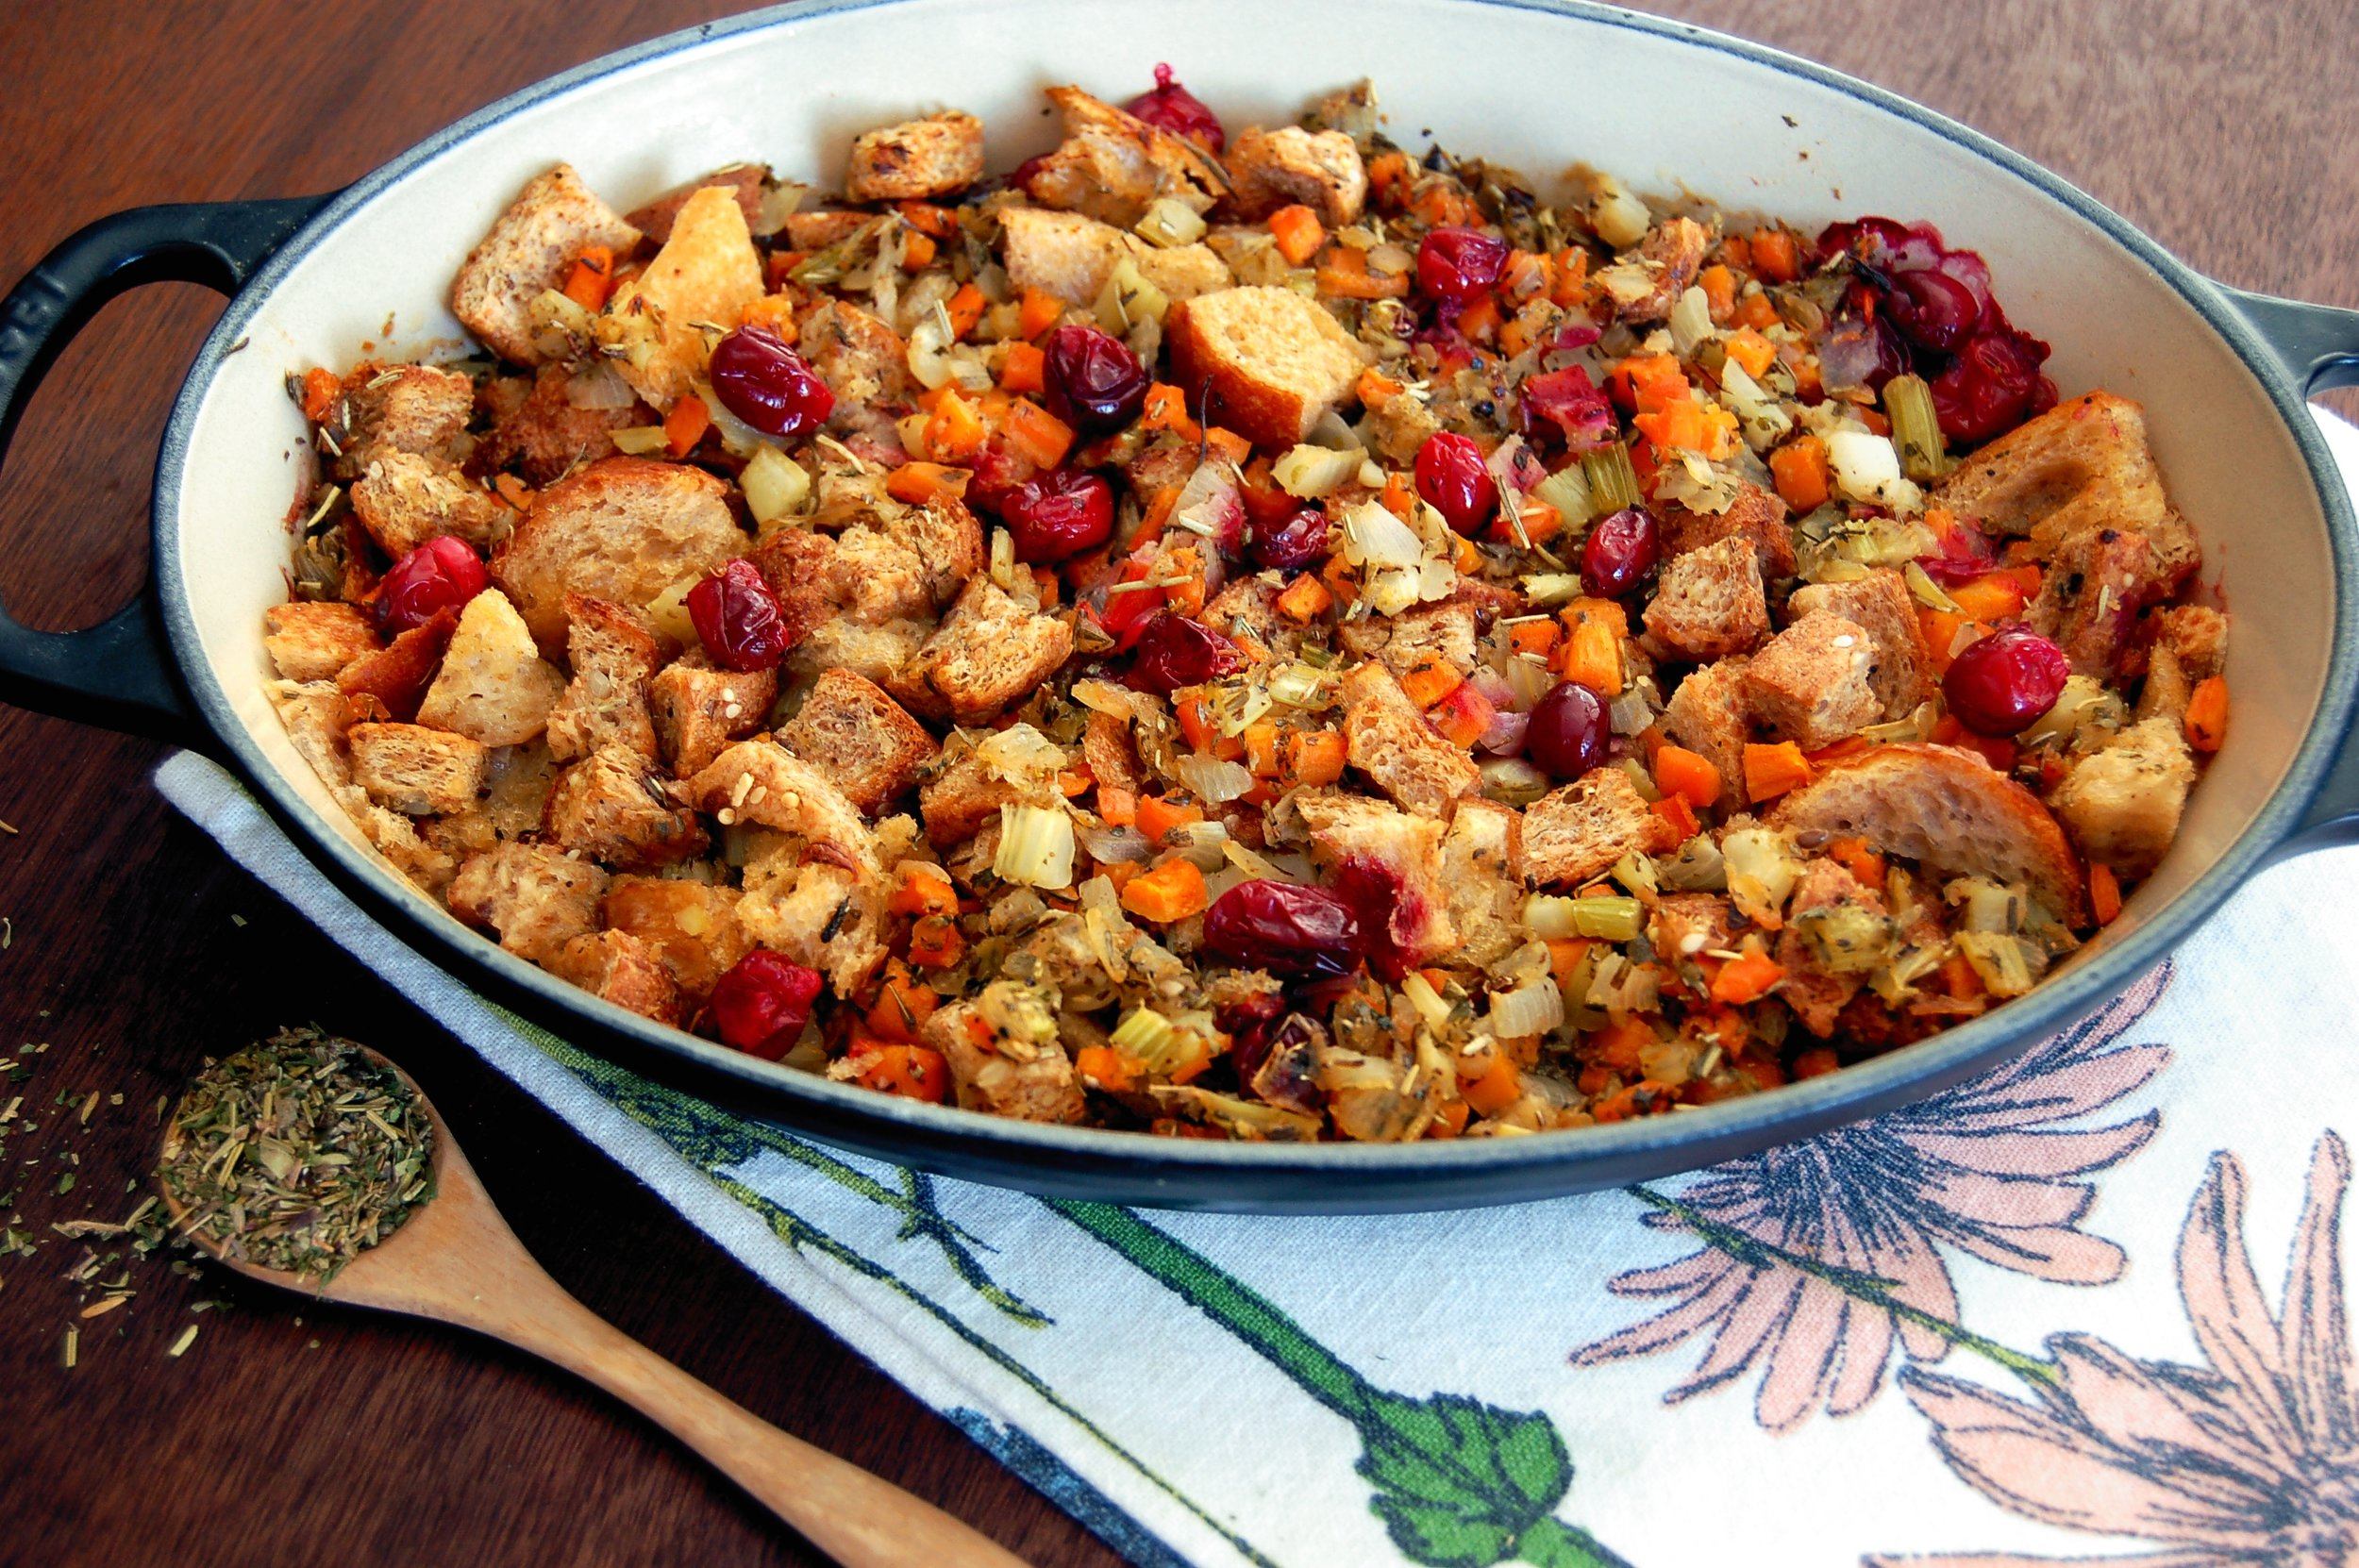 SAVOURY STUFFING - {Made with Arvinda's Savoury Stuffing Blend}